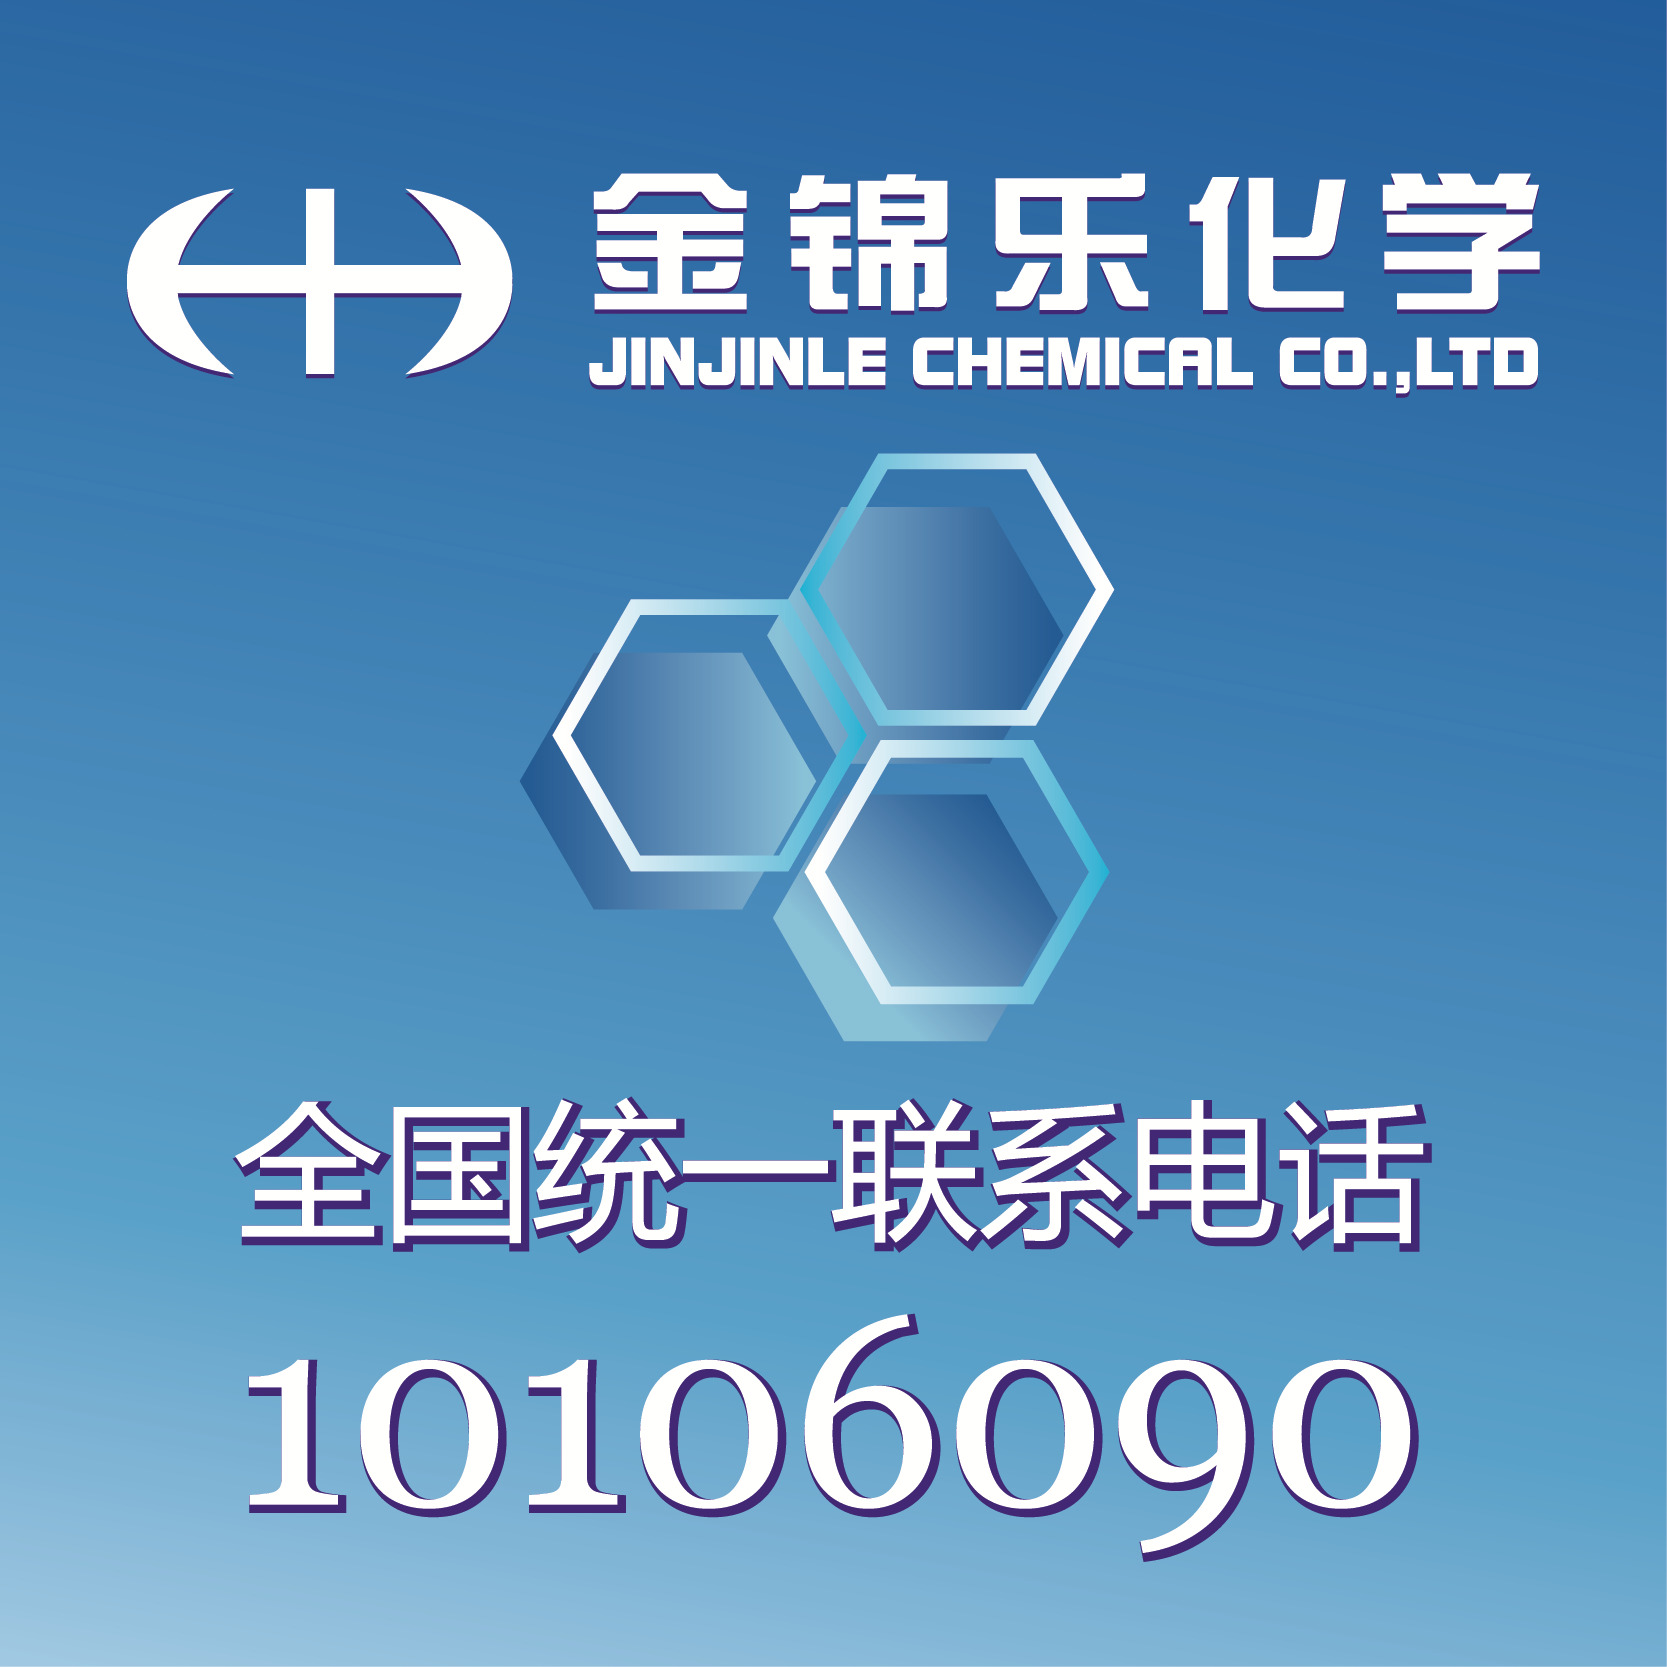 Shanghai jinjinle Industry Co., Ltd